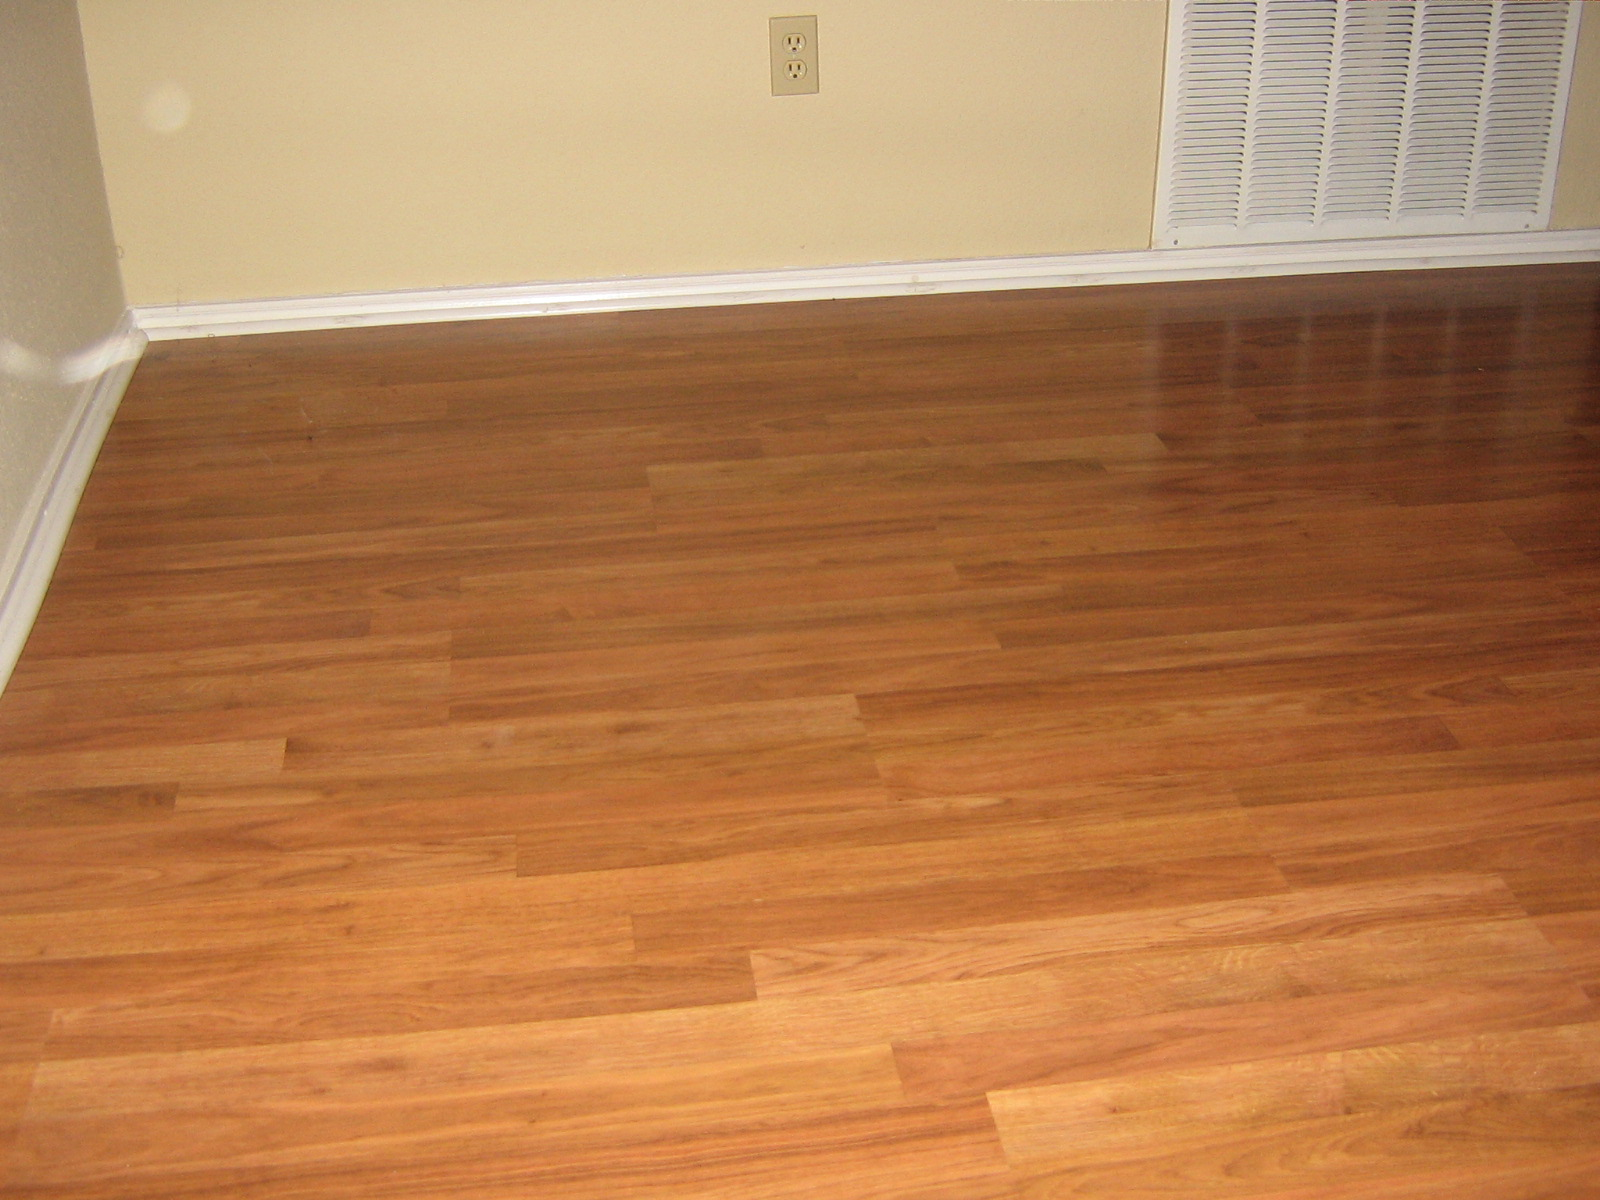 Laminate flooring home and lawn transformers for Home hardwood flooring